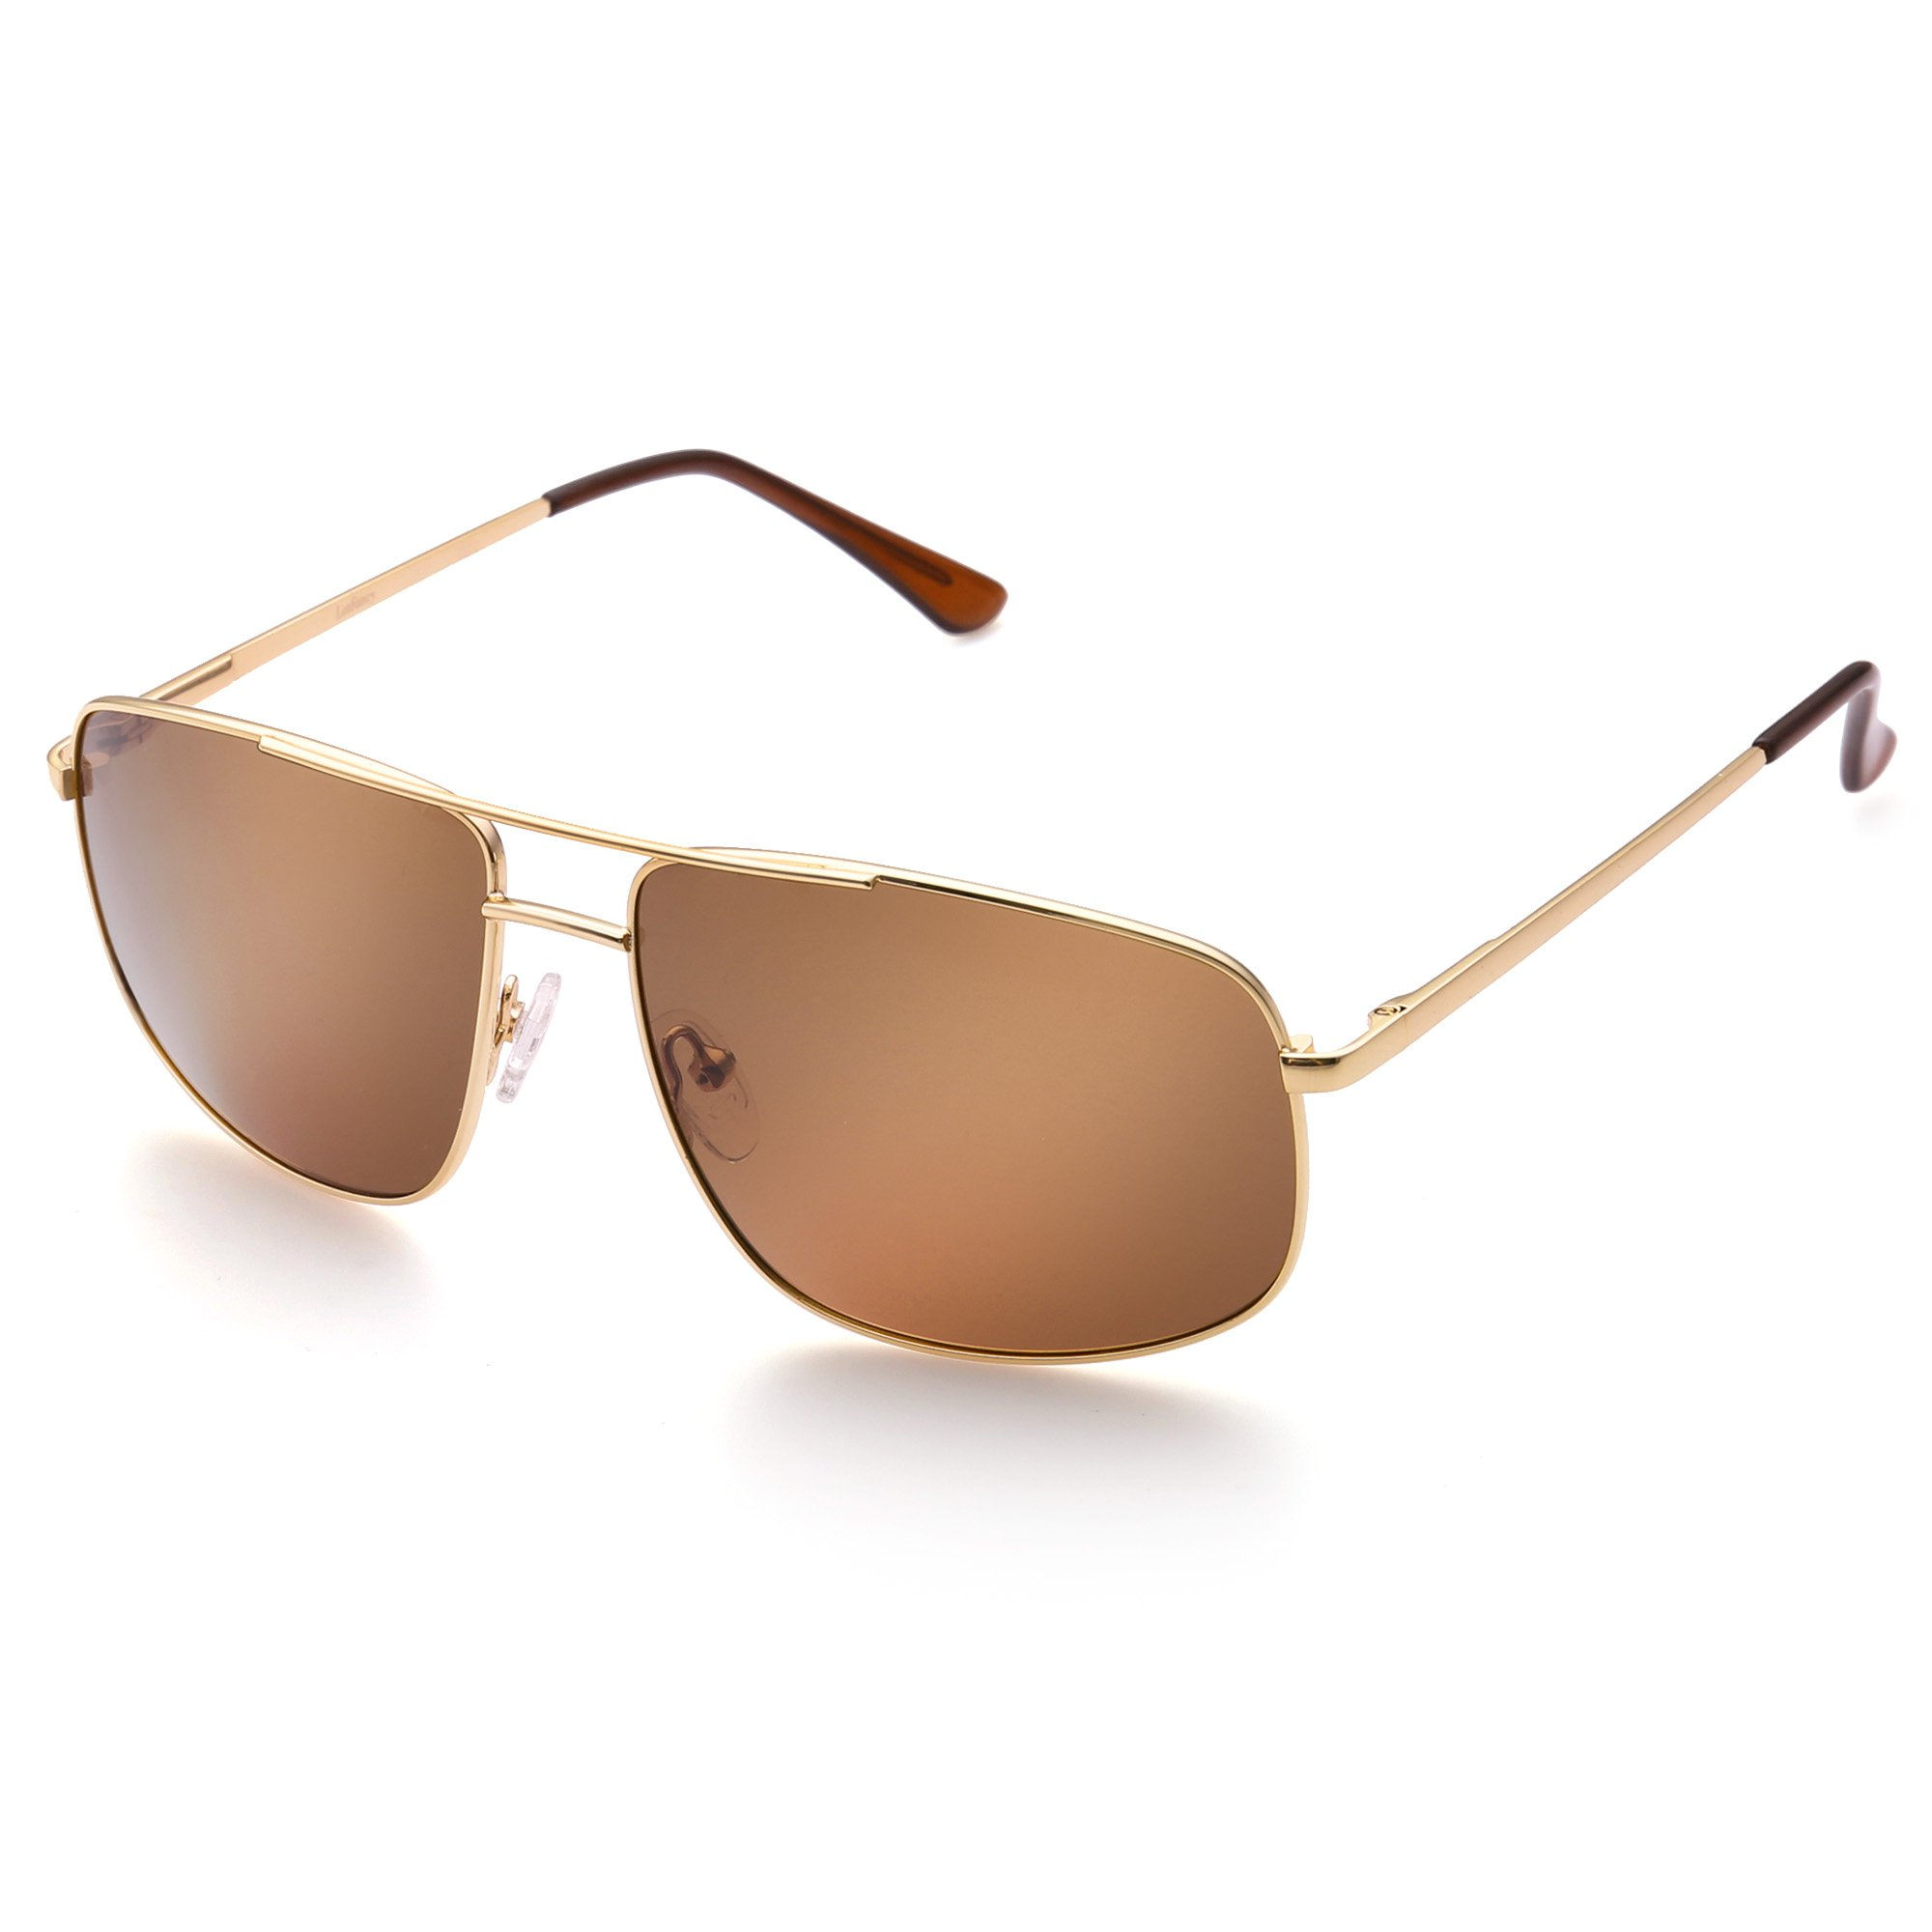 Polarized Rectangular Sunglasses for Men, Trendy Gold Metal Frame, Classic Brown Lens, UV Protection by LotFancy